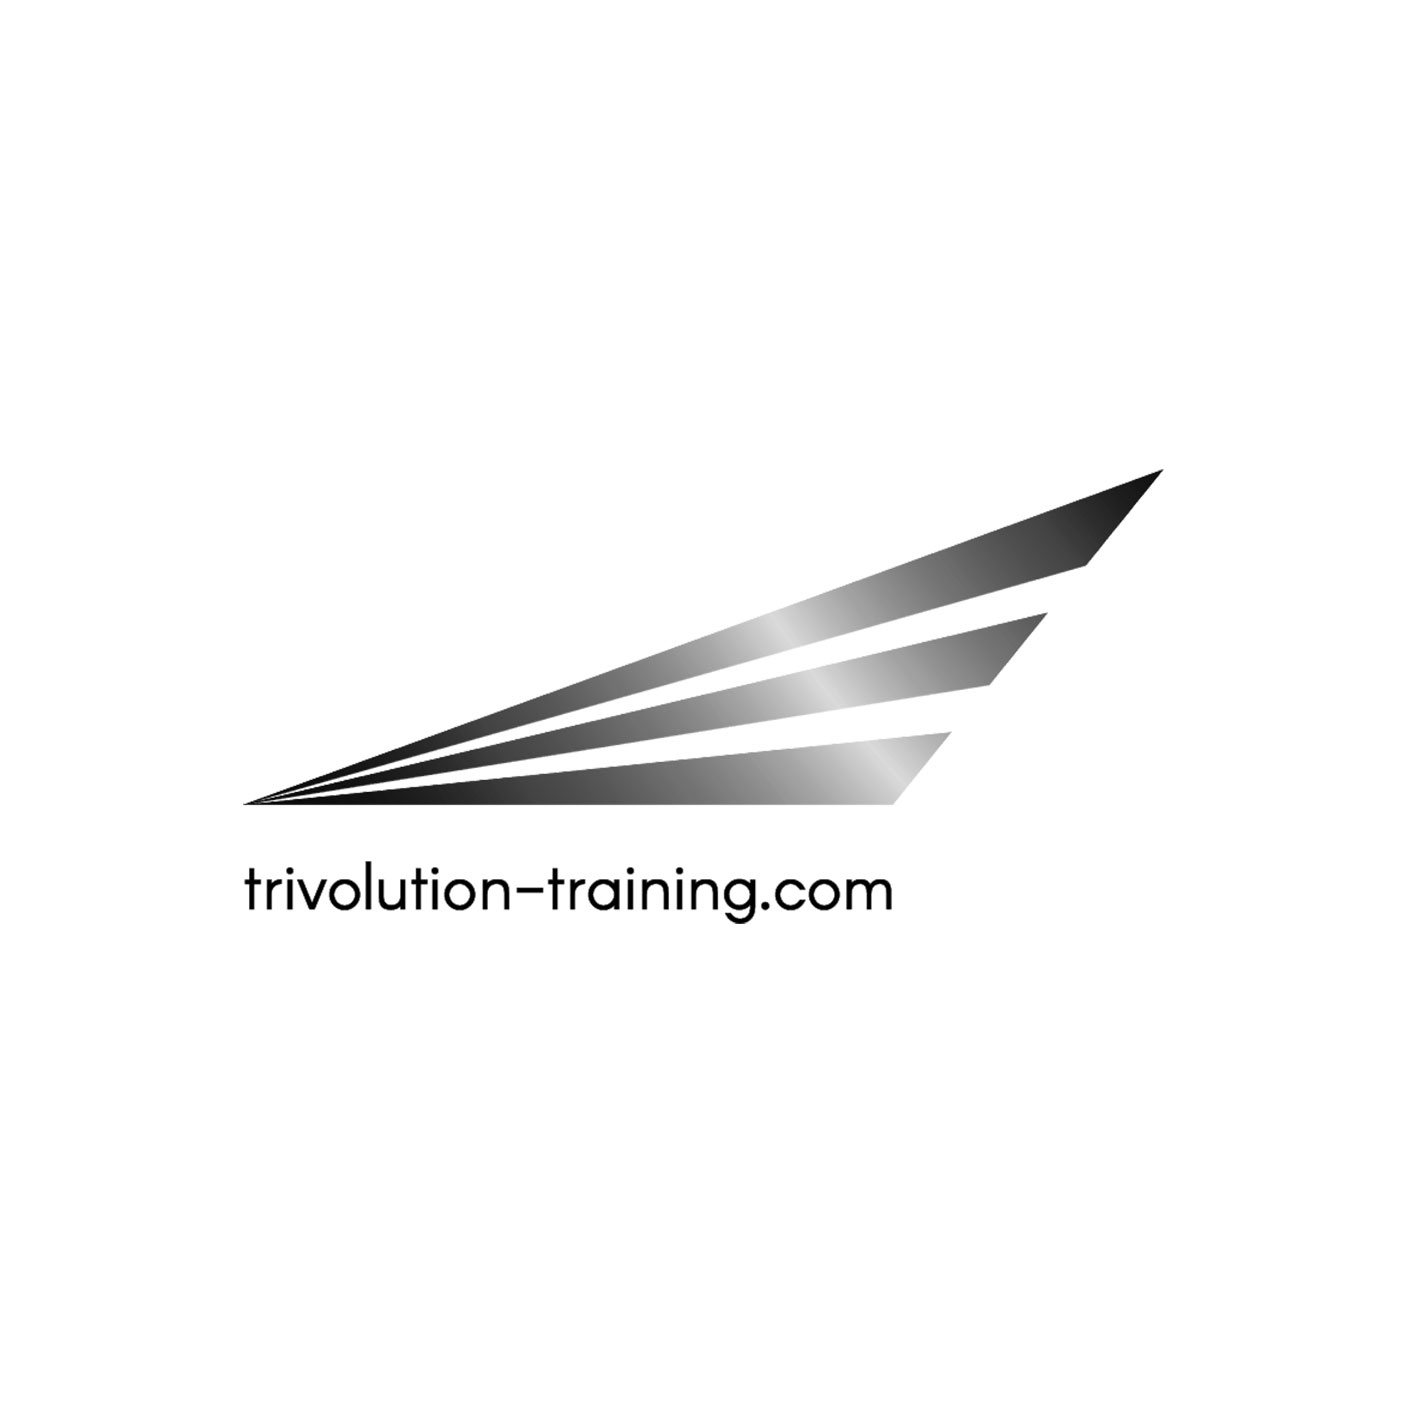 Trivolution Training